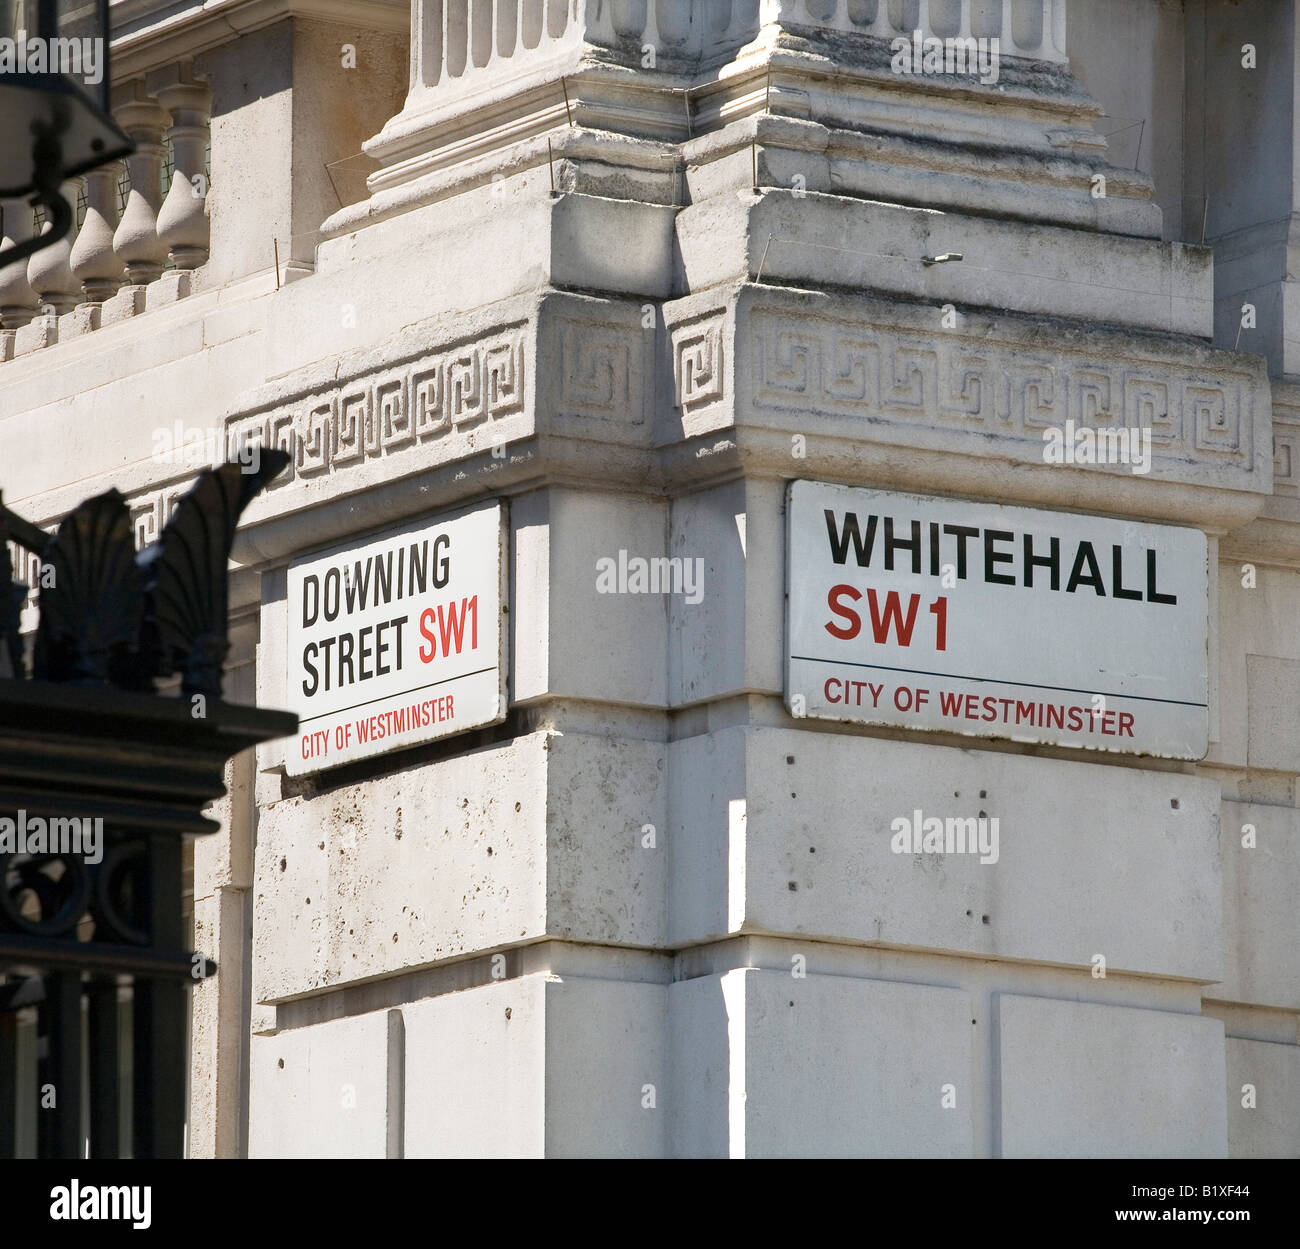 Street signs of famous Downing Street and Whitehall in London - Stock Image